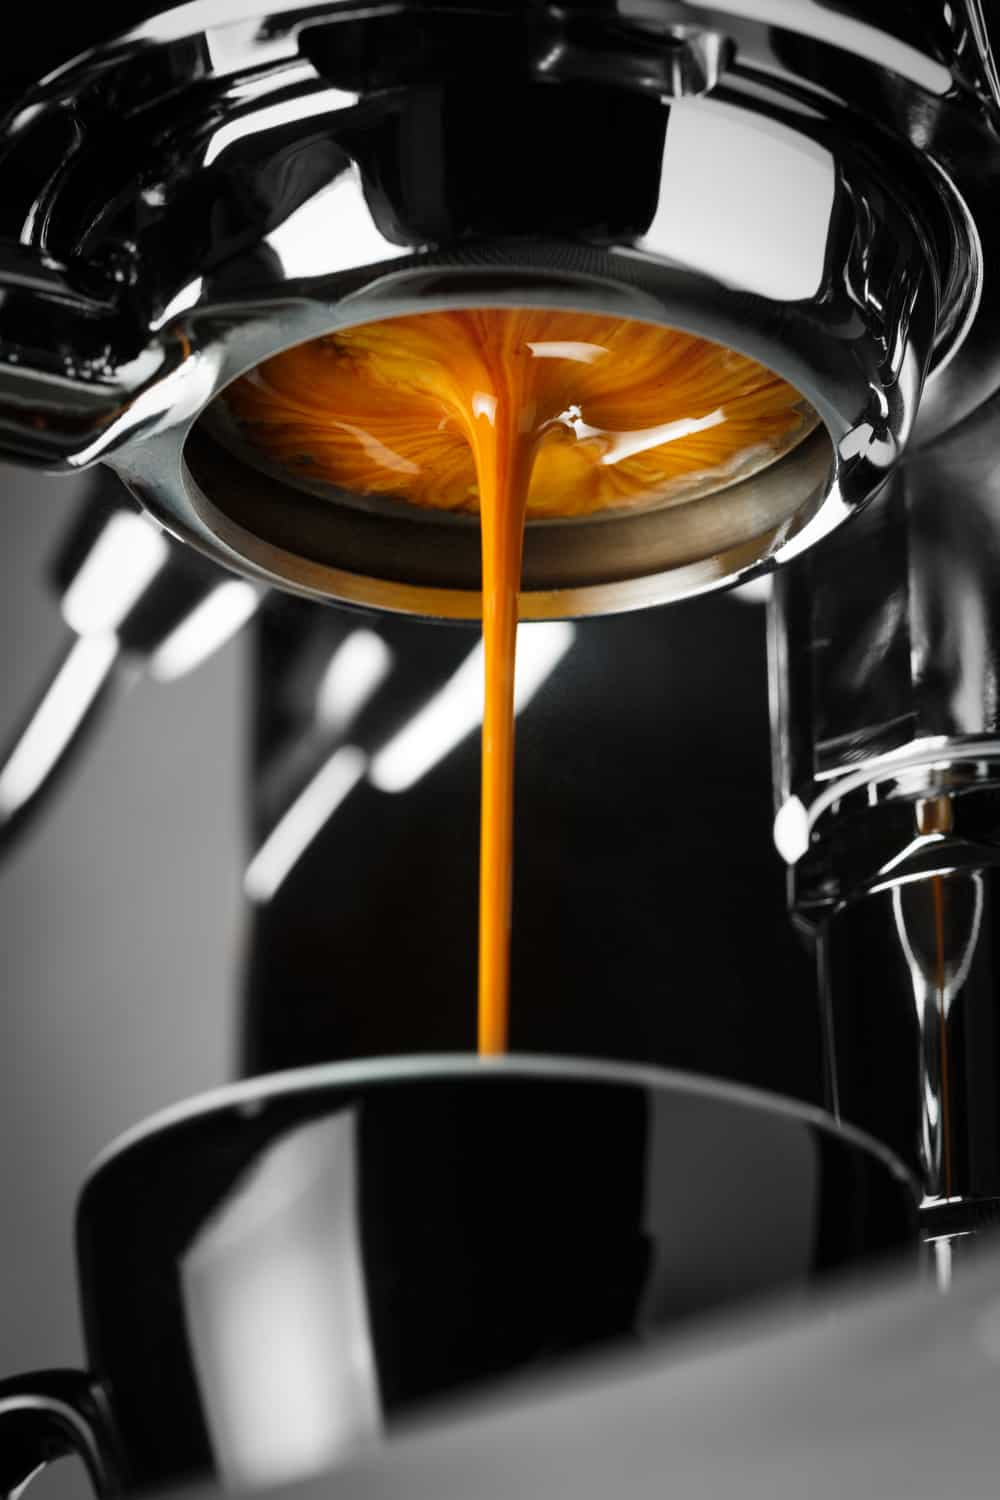 Advantages of espresso